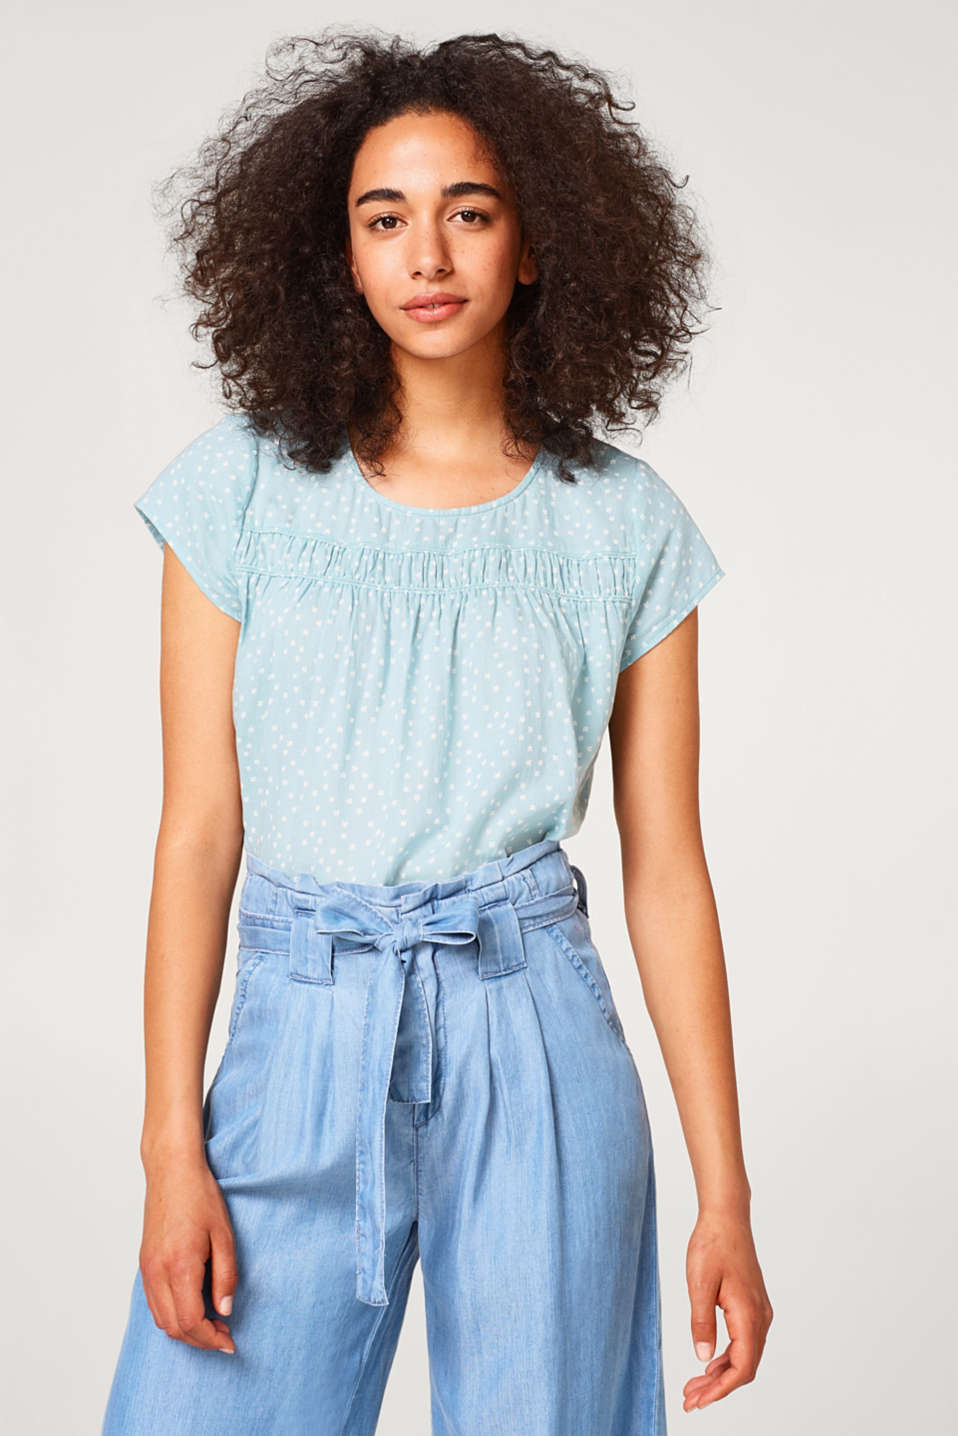 Esprit - Delicate blouse top with a gathered decorative trim